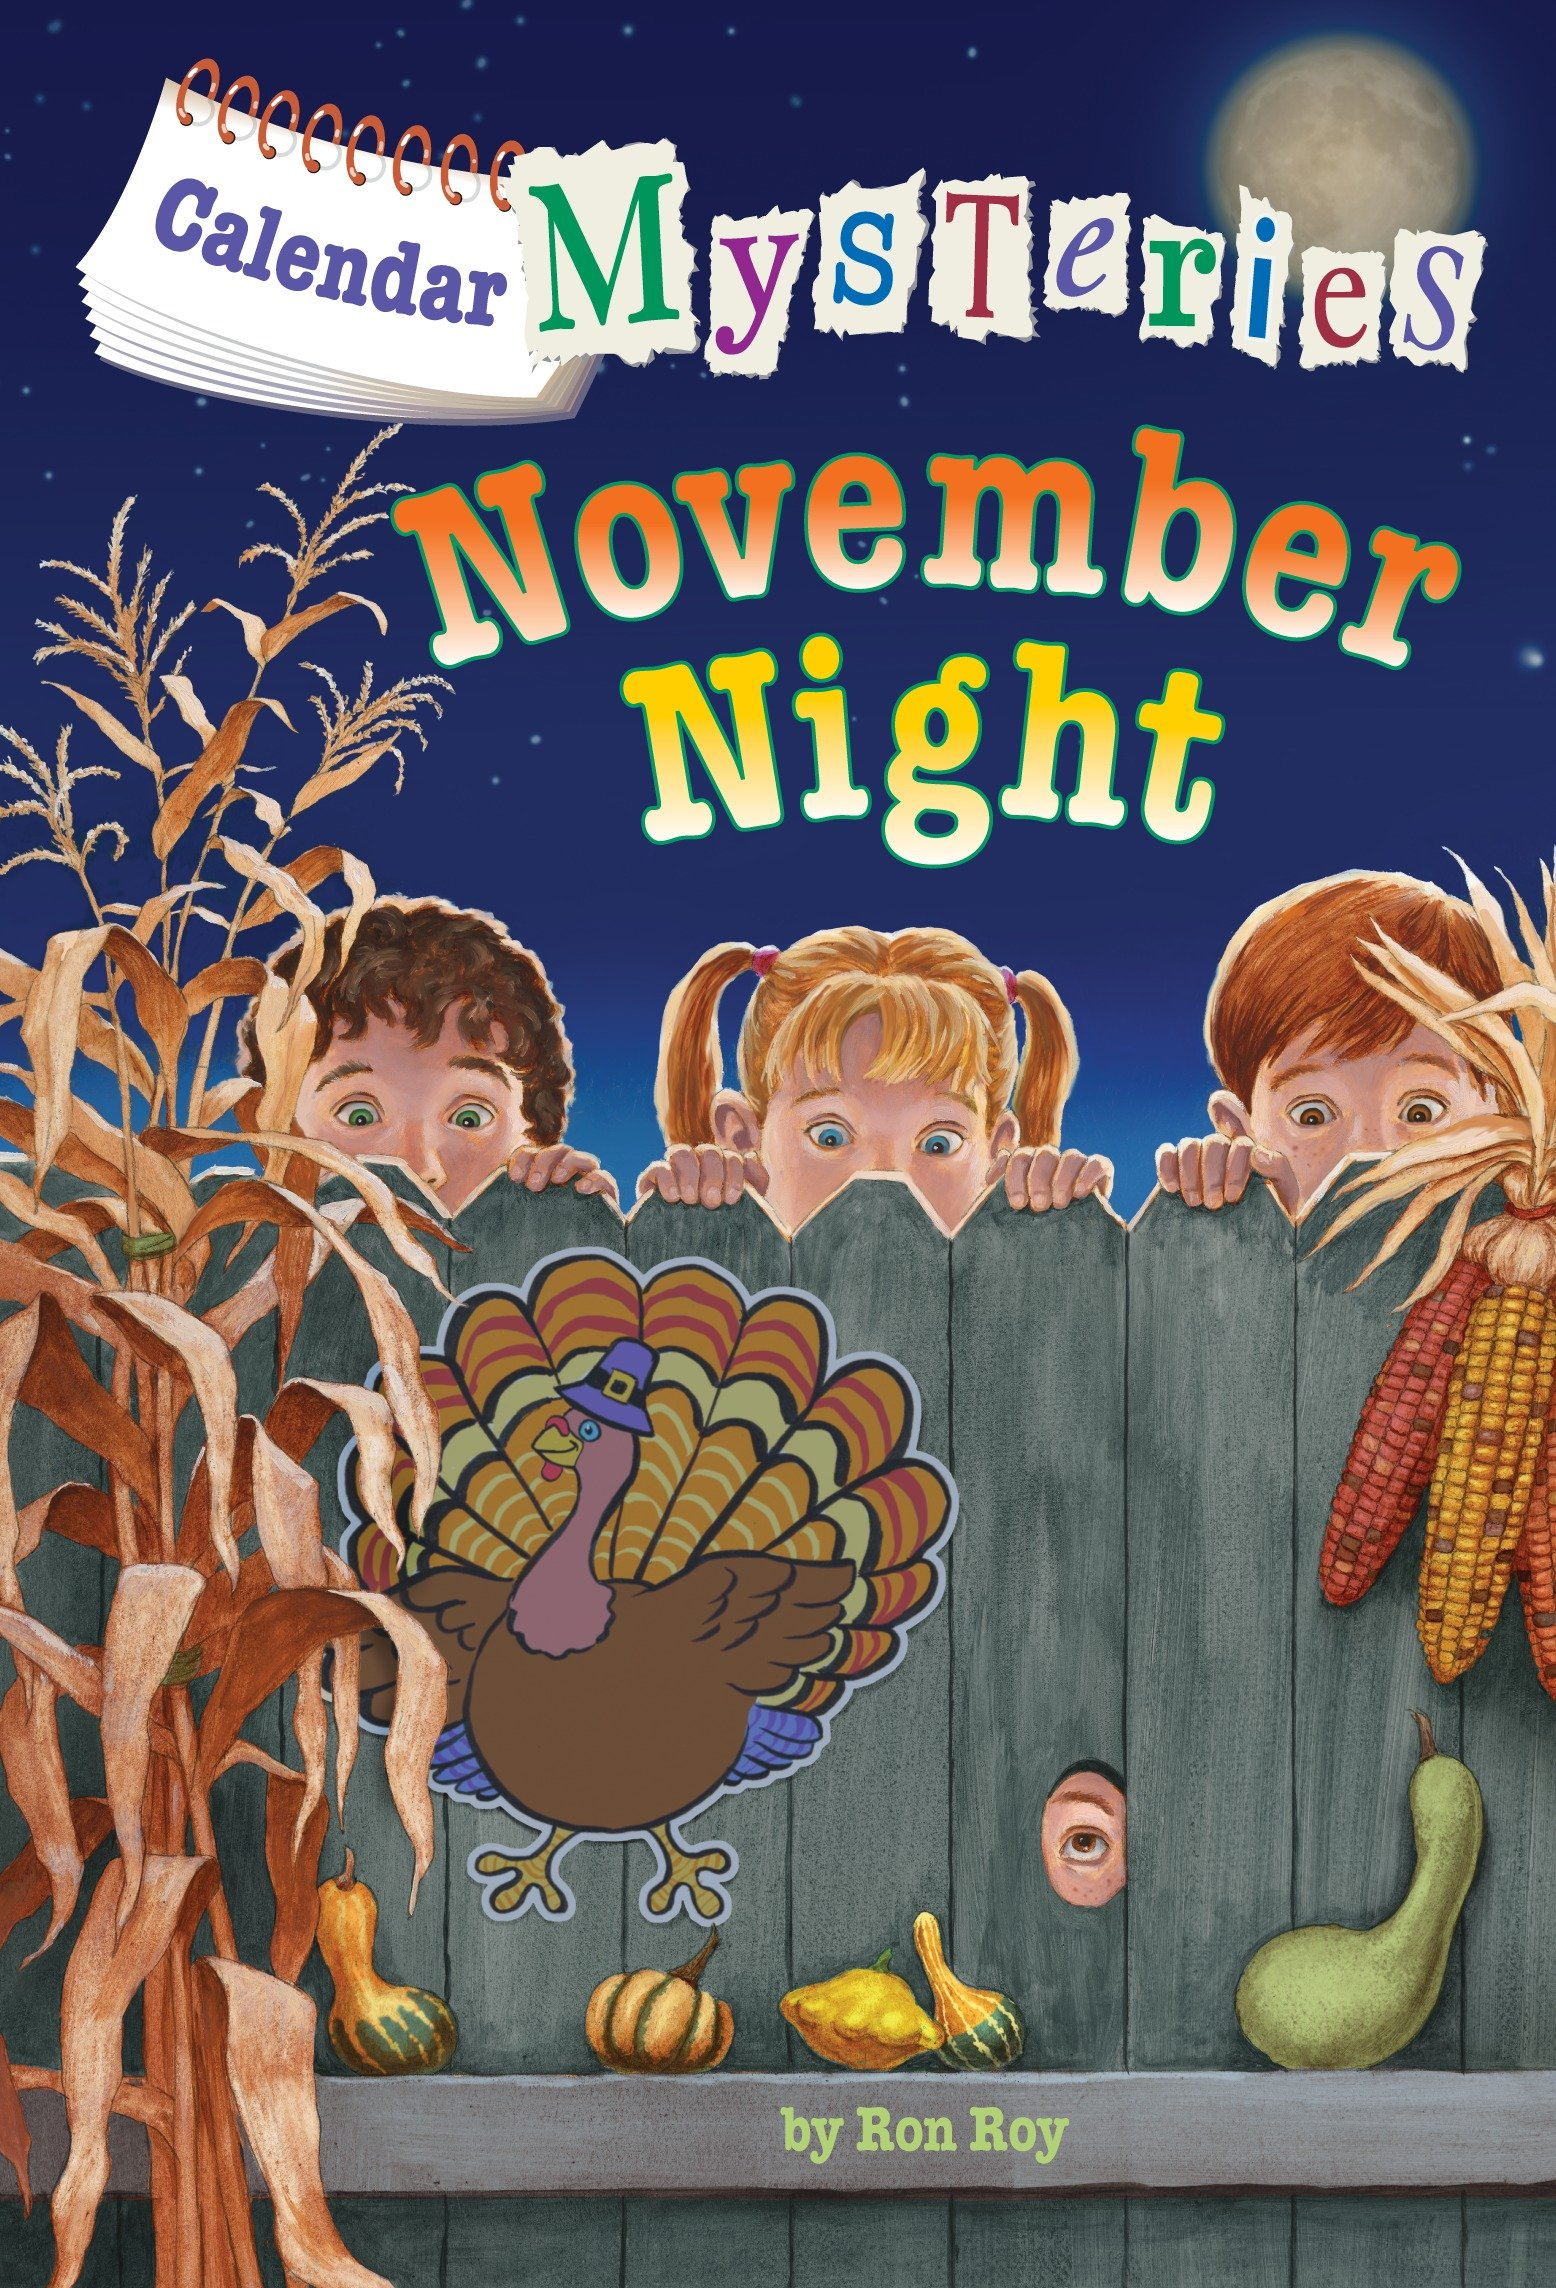 November night cover image